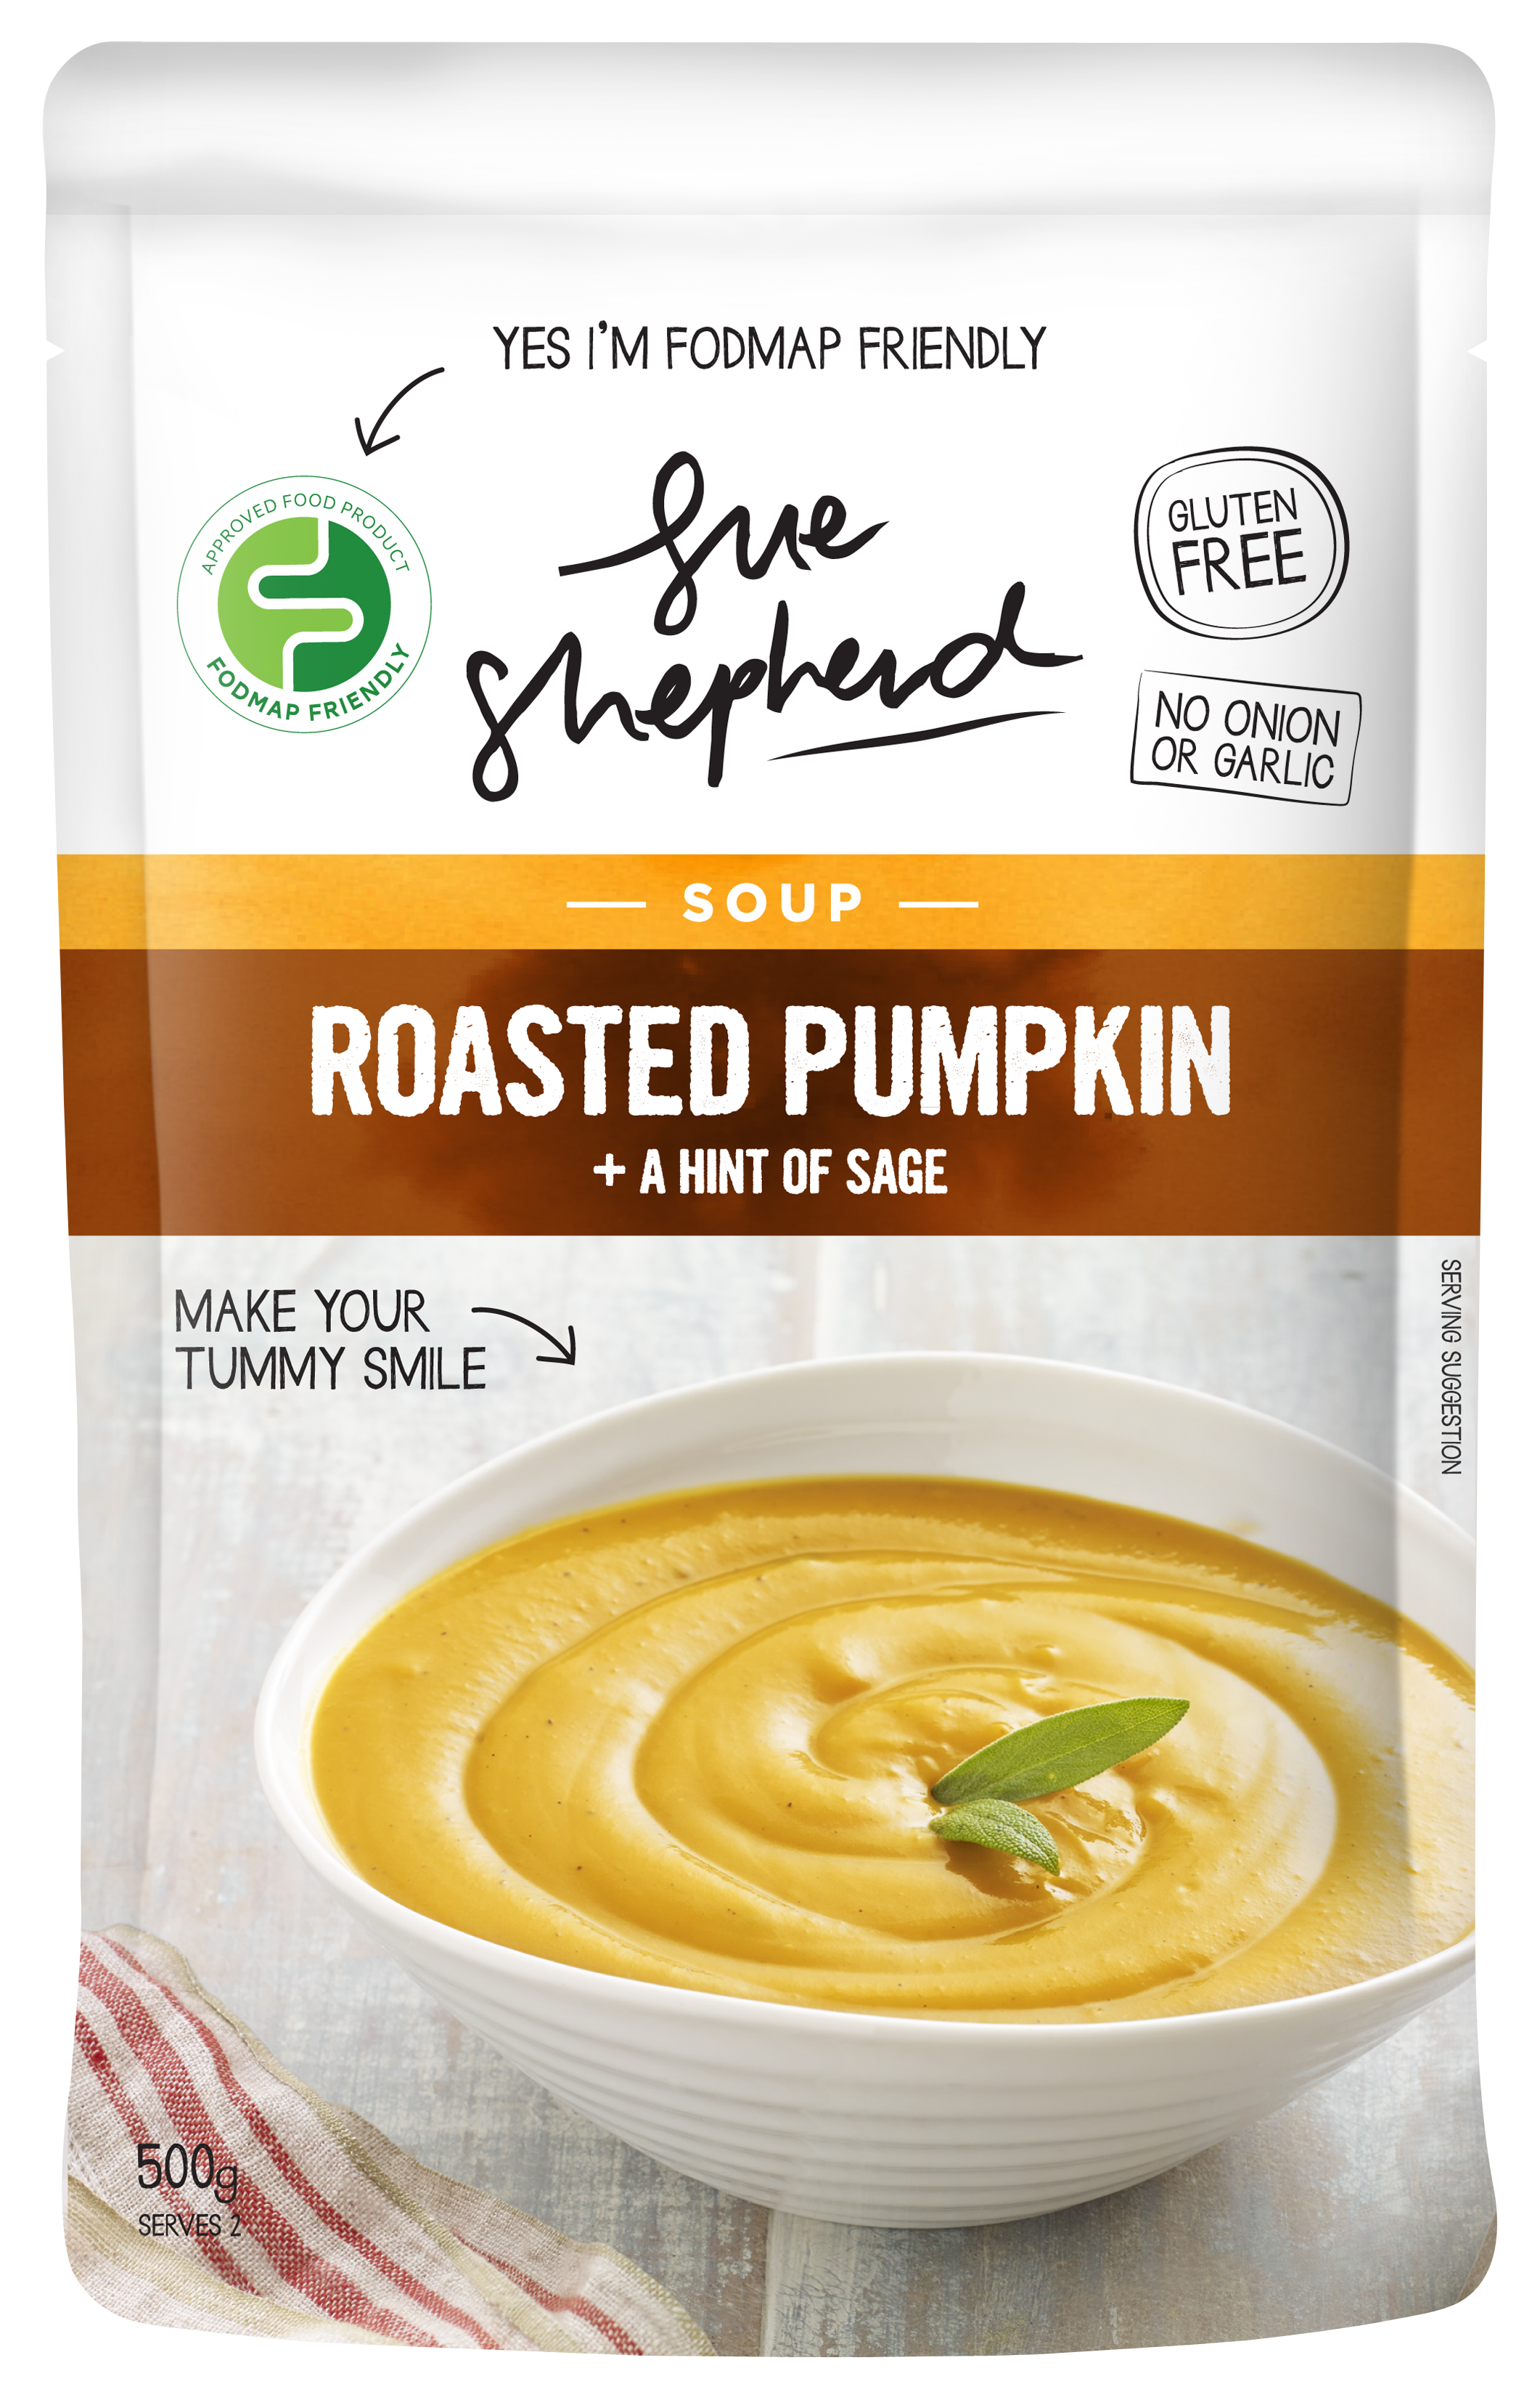 Roasted Pumpkin A Hint of Sage Soup | FODMAP Friendly food products ...